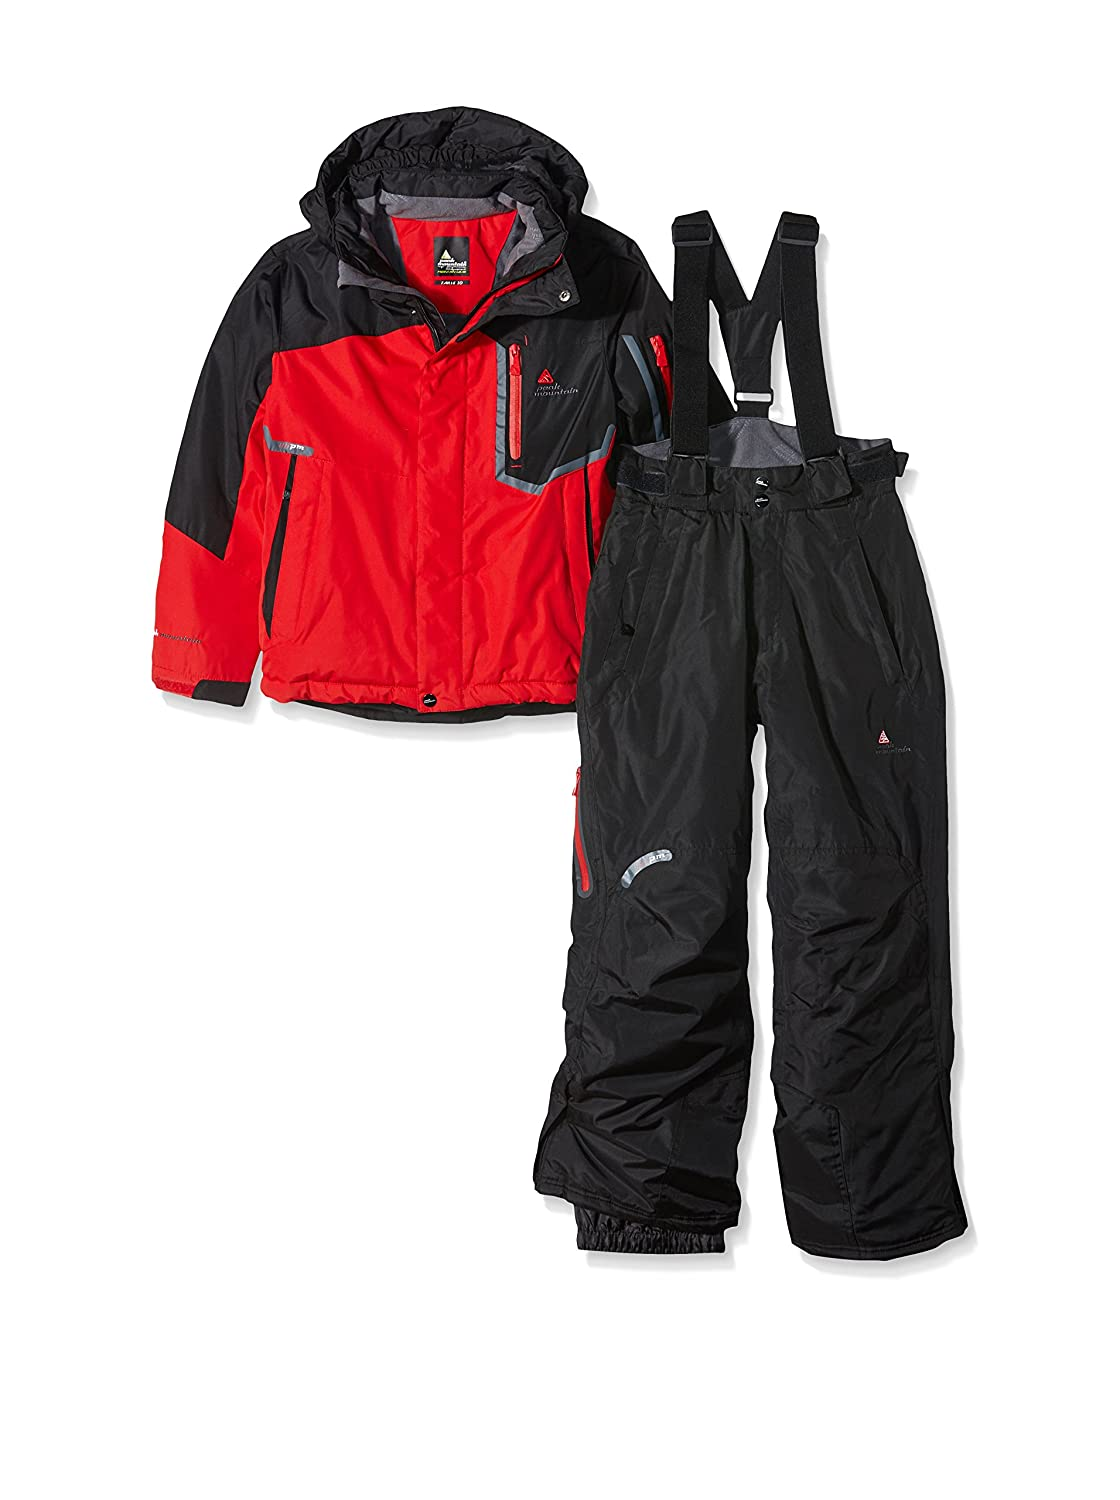 Peak Mountain - Skihose ARALOXIX